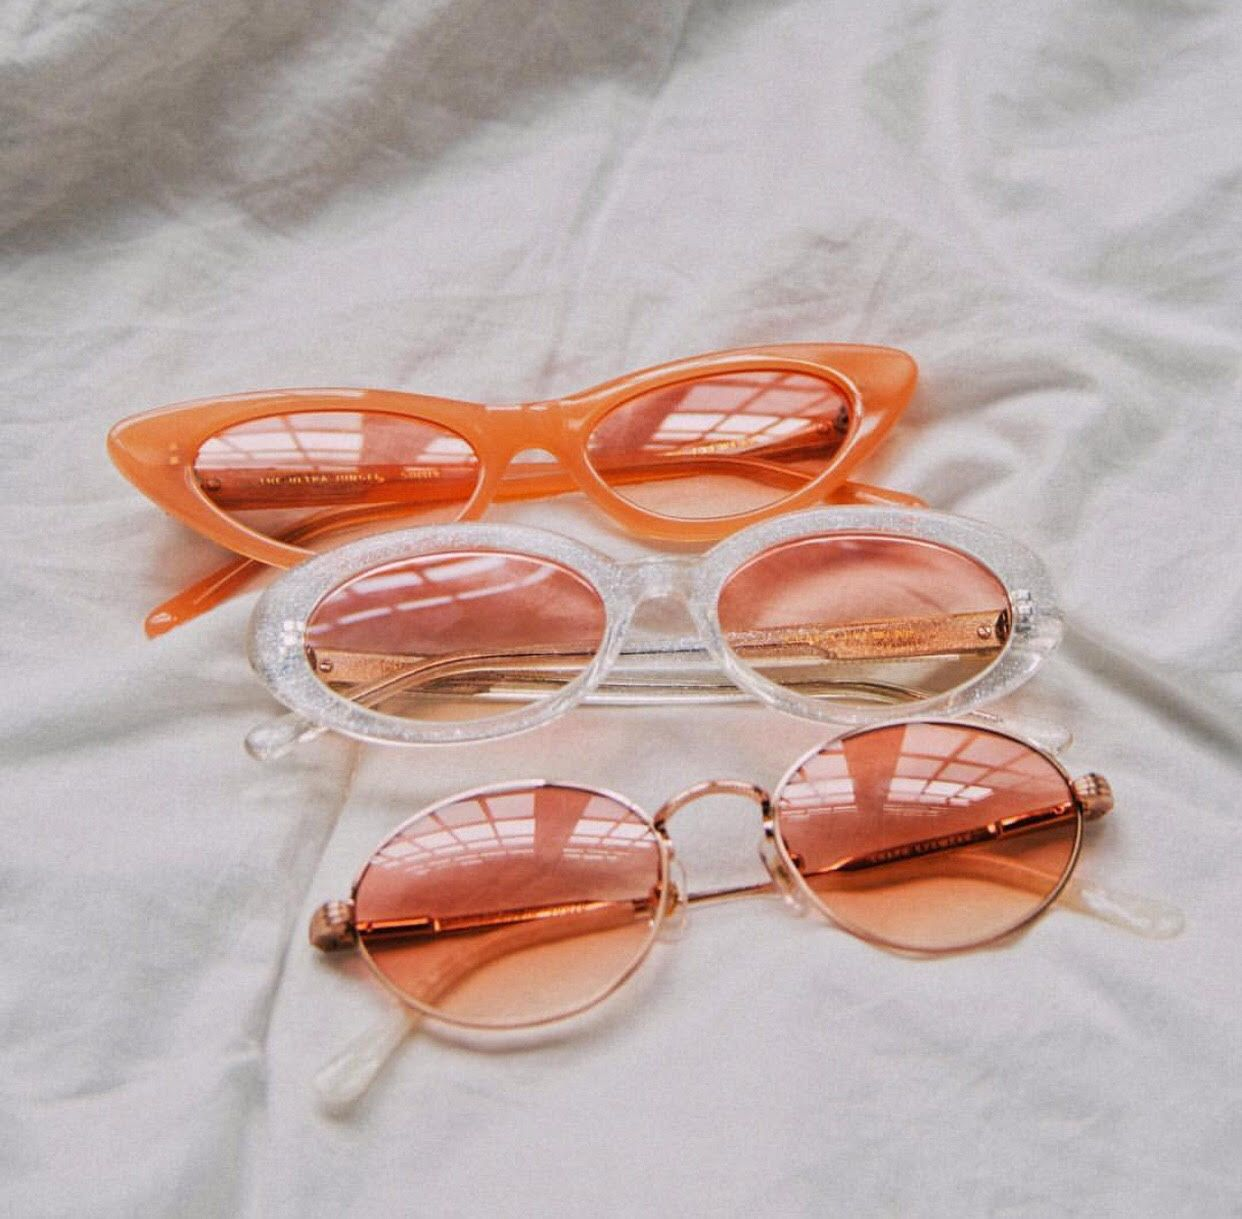 880cb064e9 Sunglasses are a must and everyone needs a pair! Especially this cute leaf  shape glasses which are really in style affilink